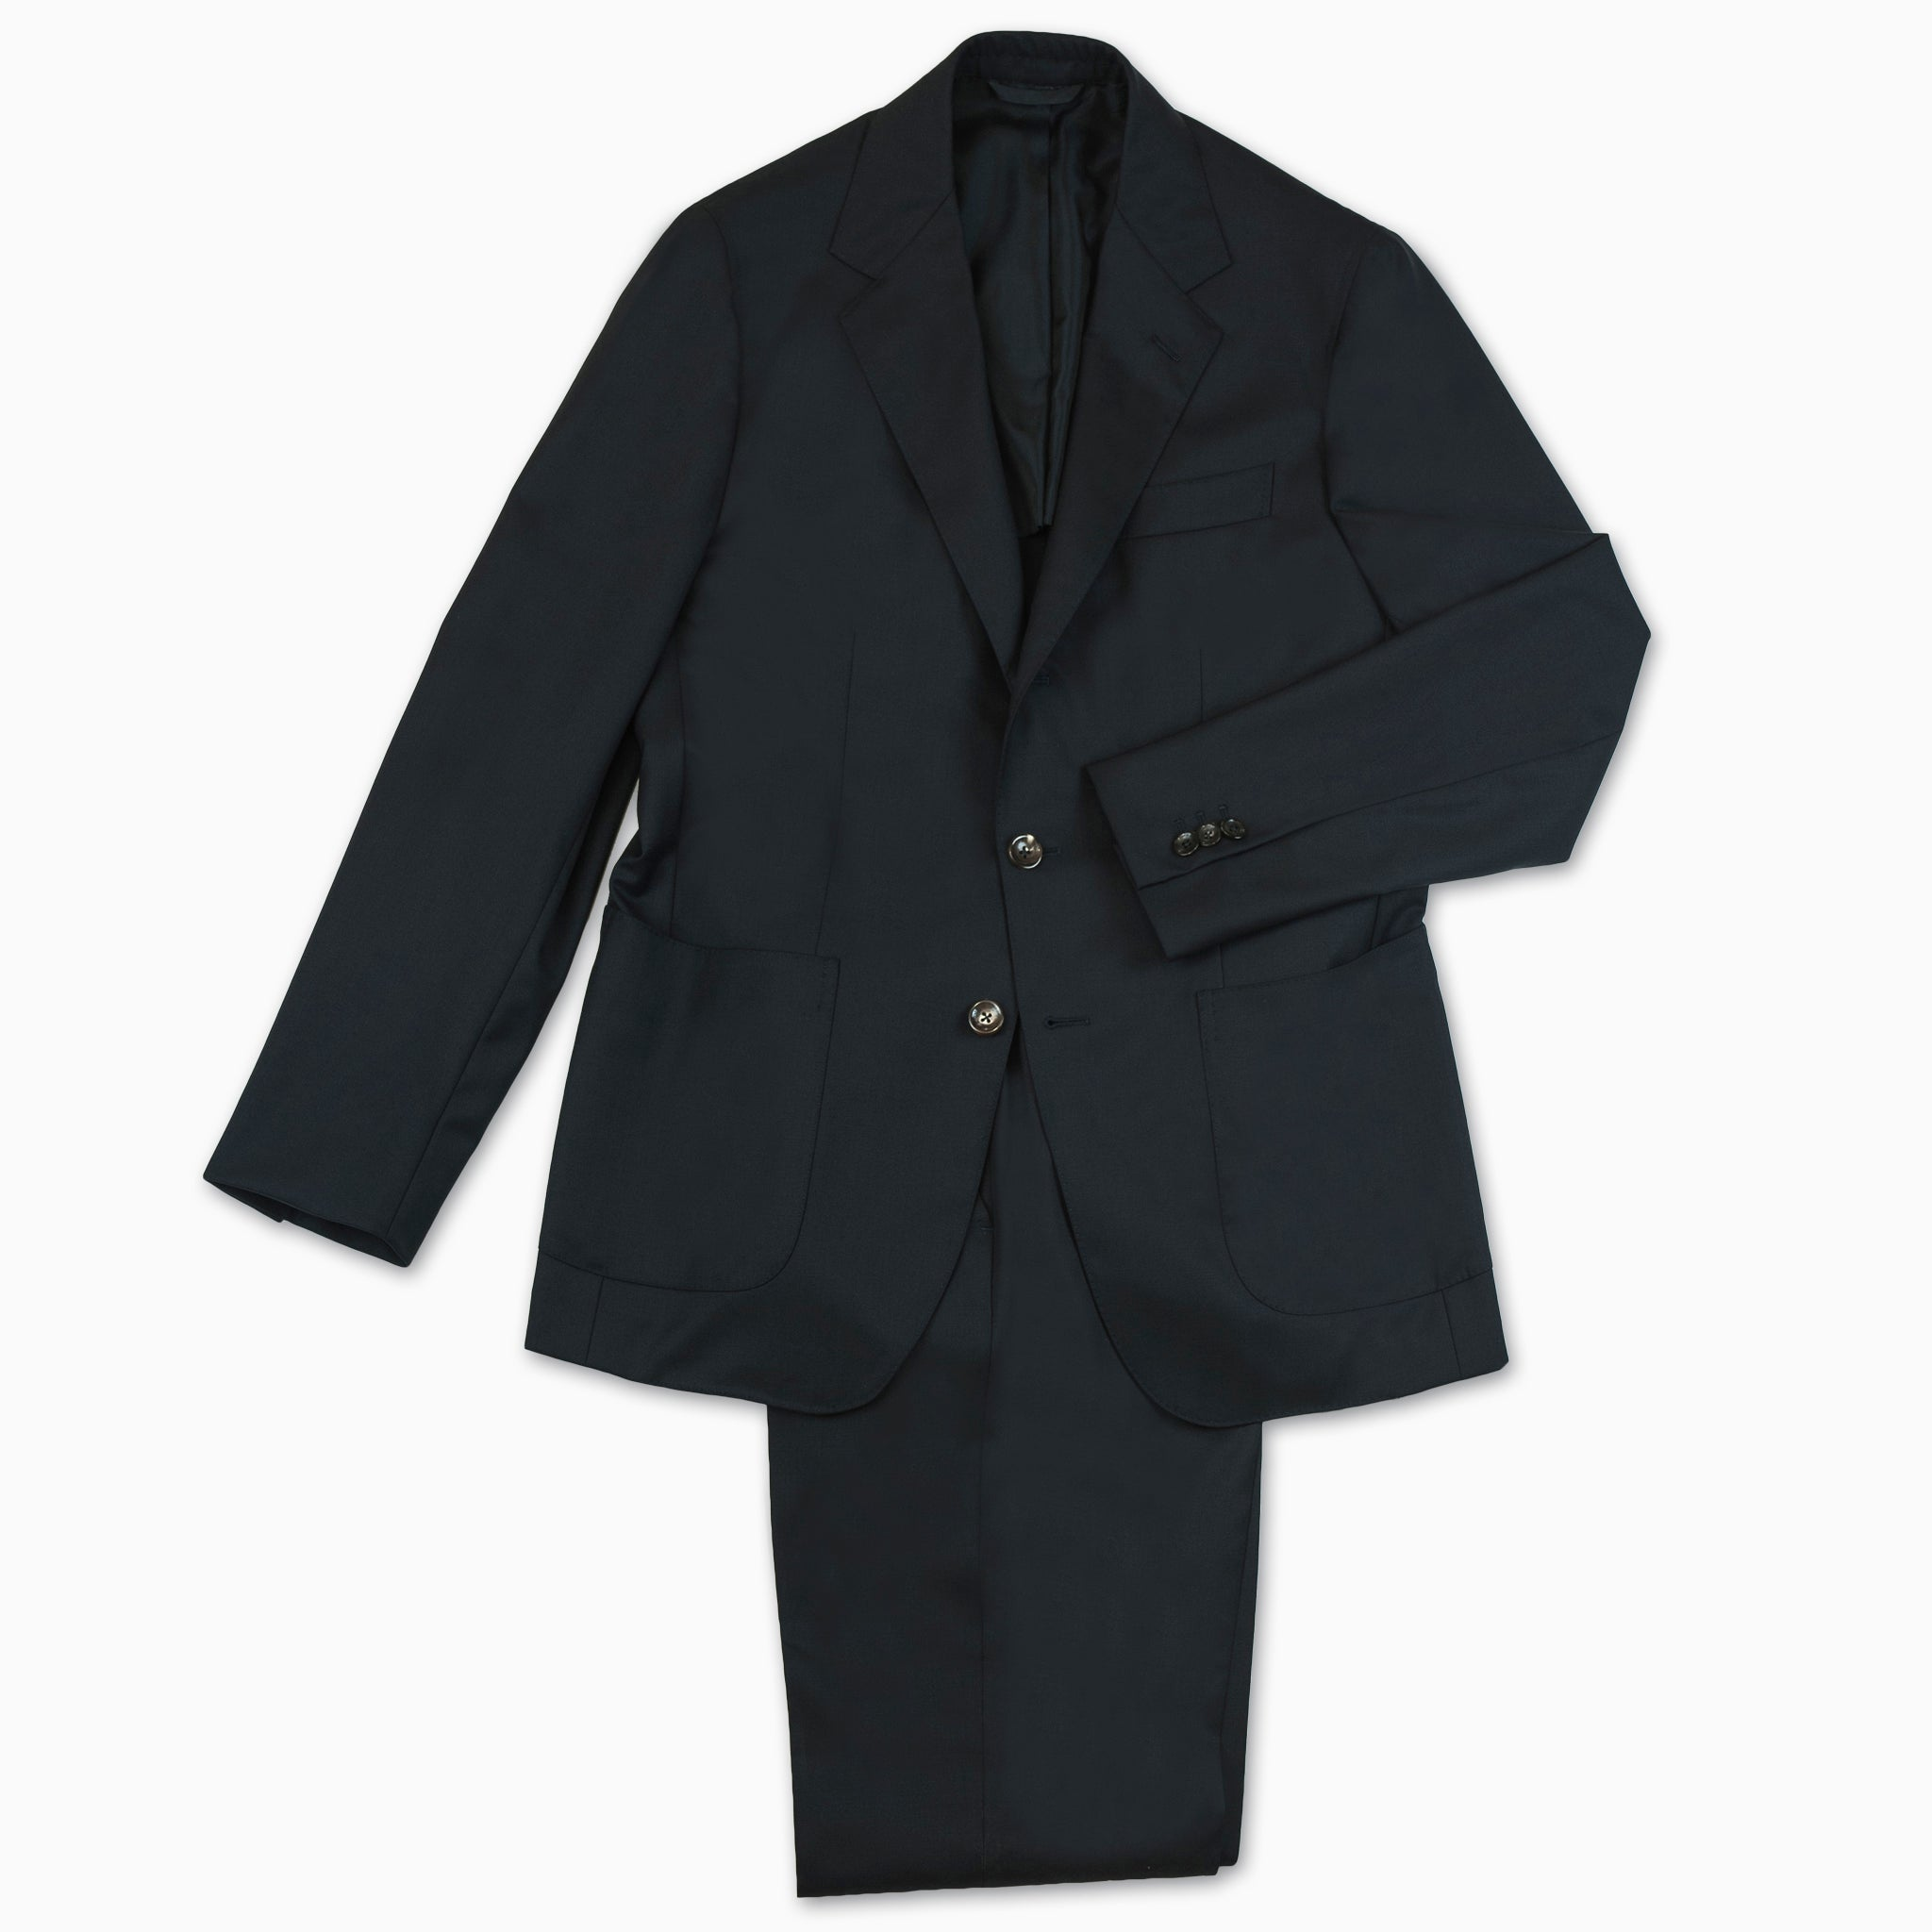 Suit Blazer and Pant in classic wool (dark blue)